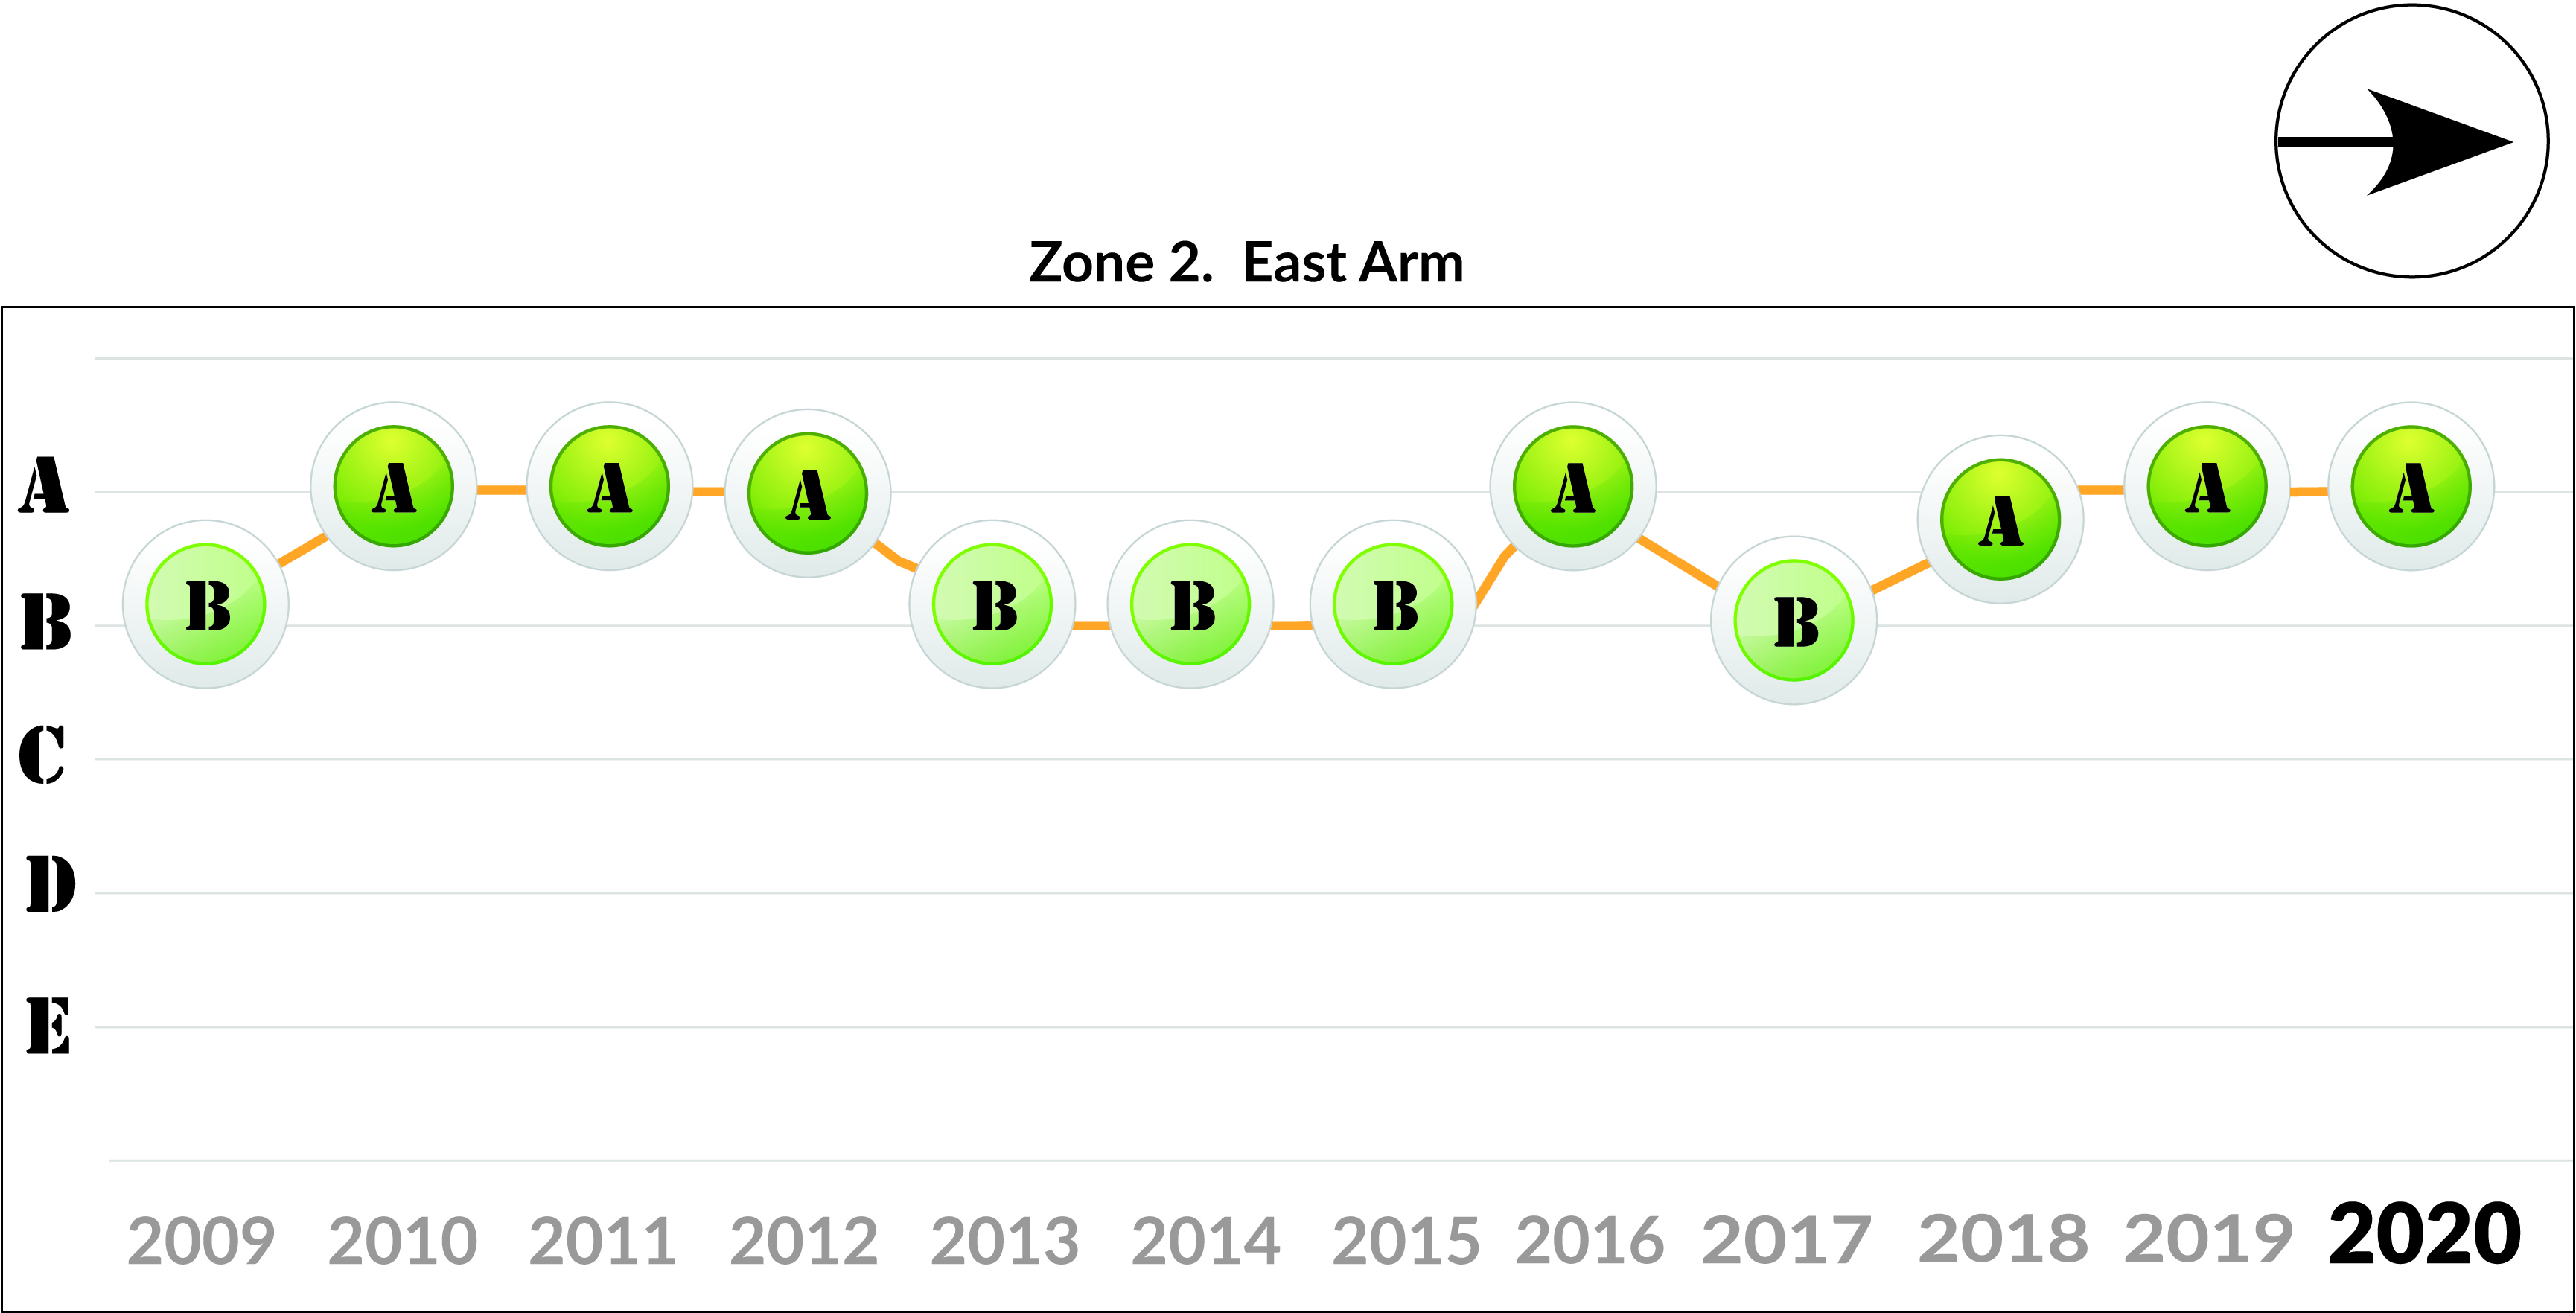 Zone 2 - East Arm trend 2020